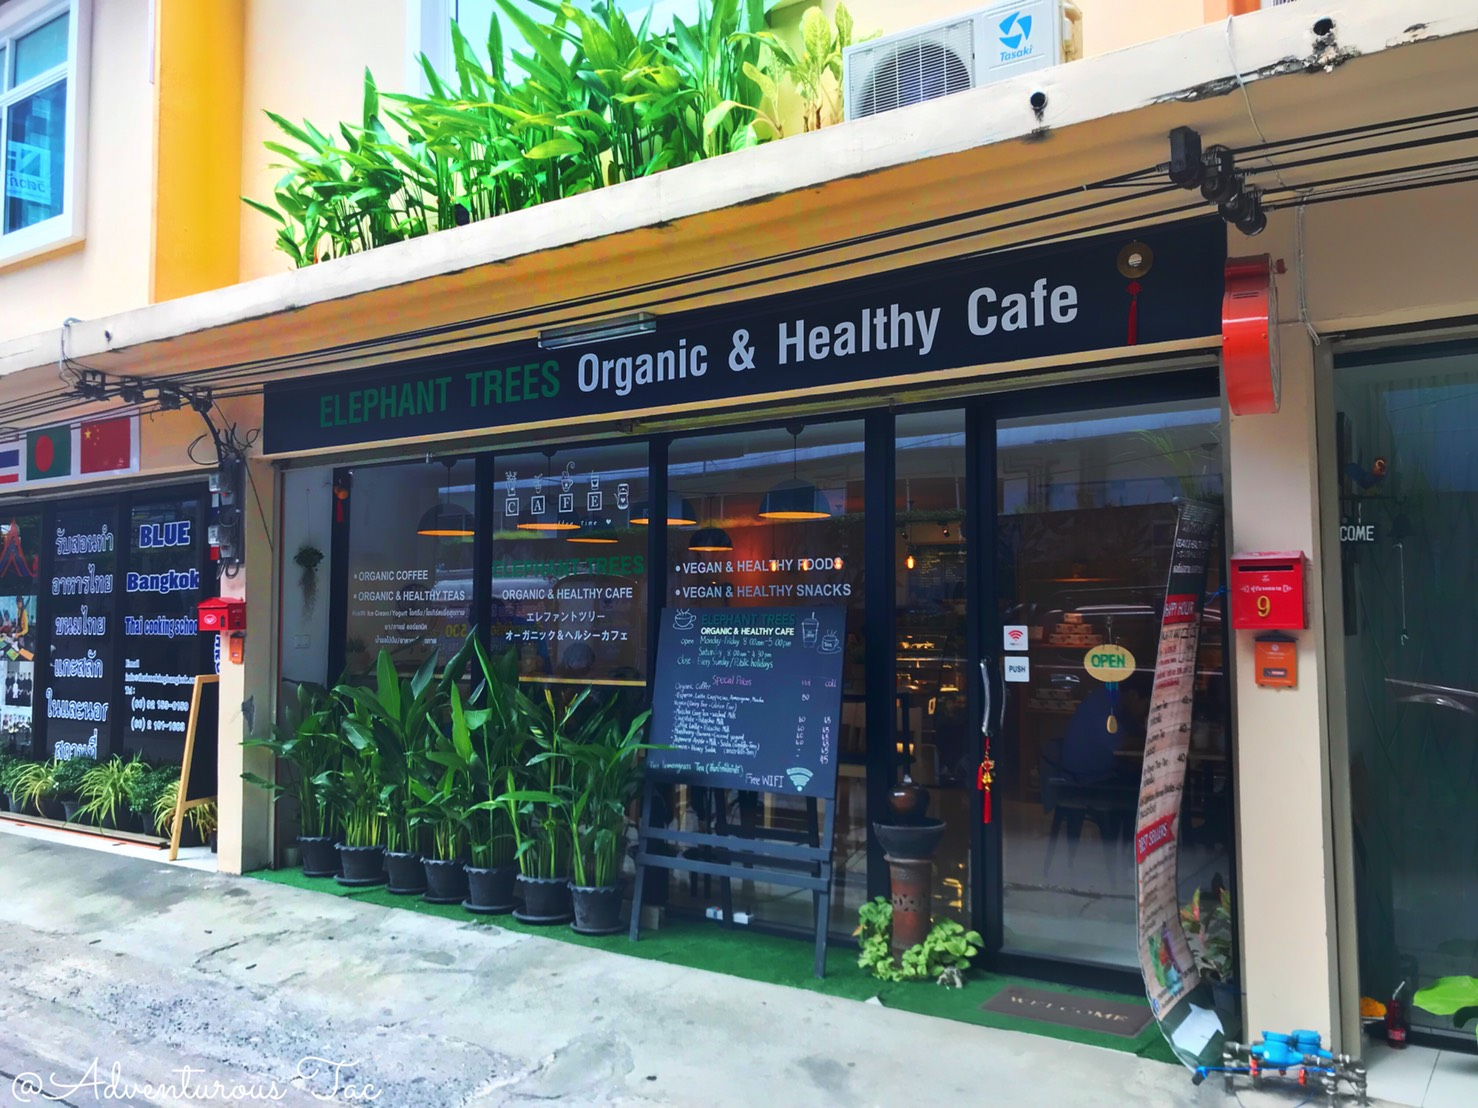 ELEPHANT TREES】An small organic cafe close to BTS bangchak station